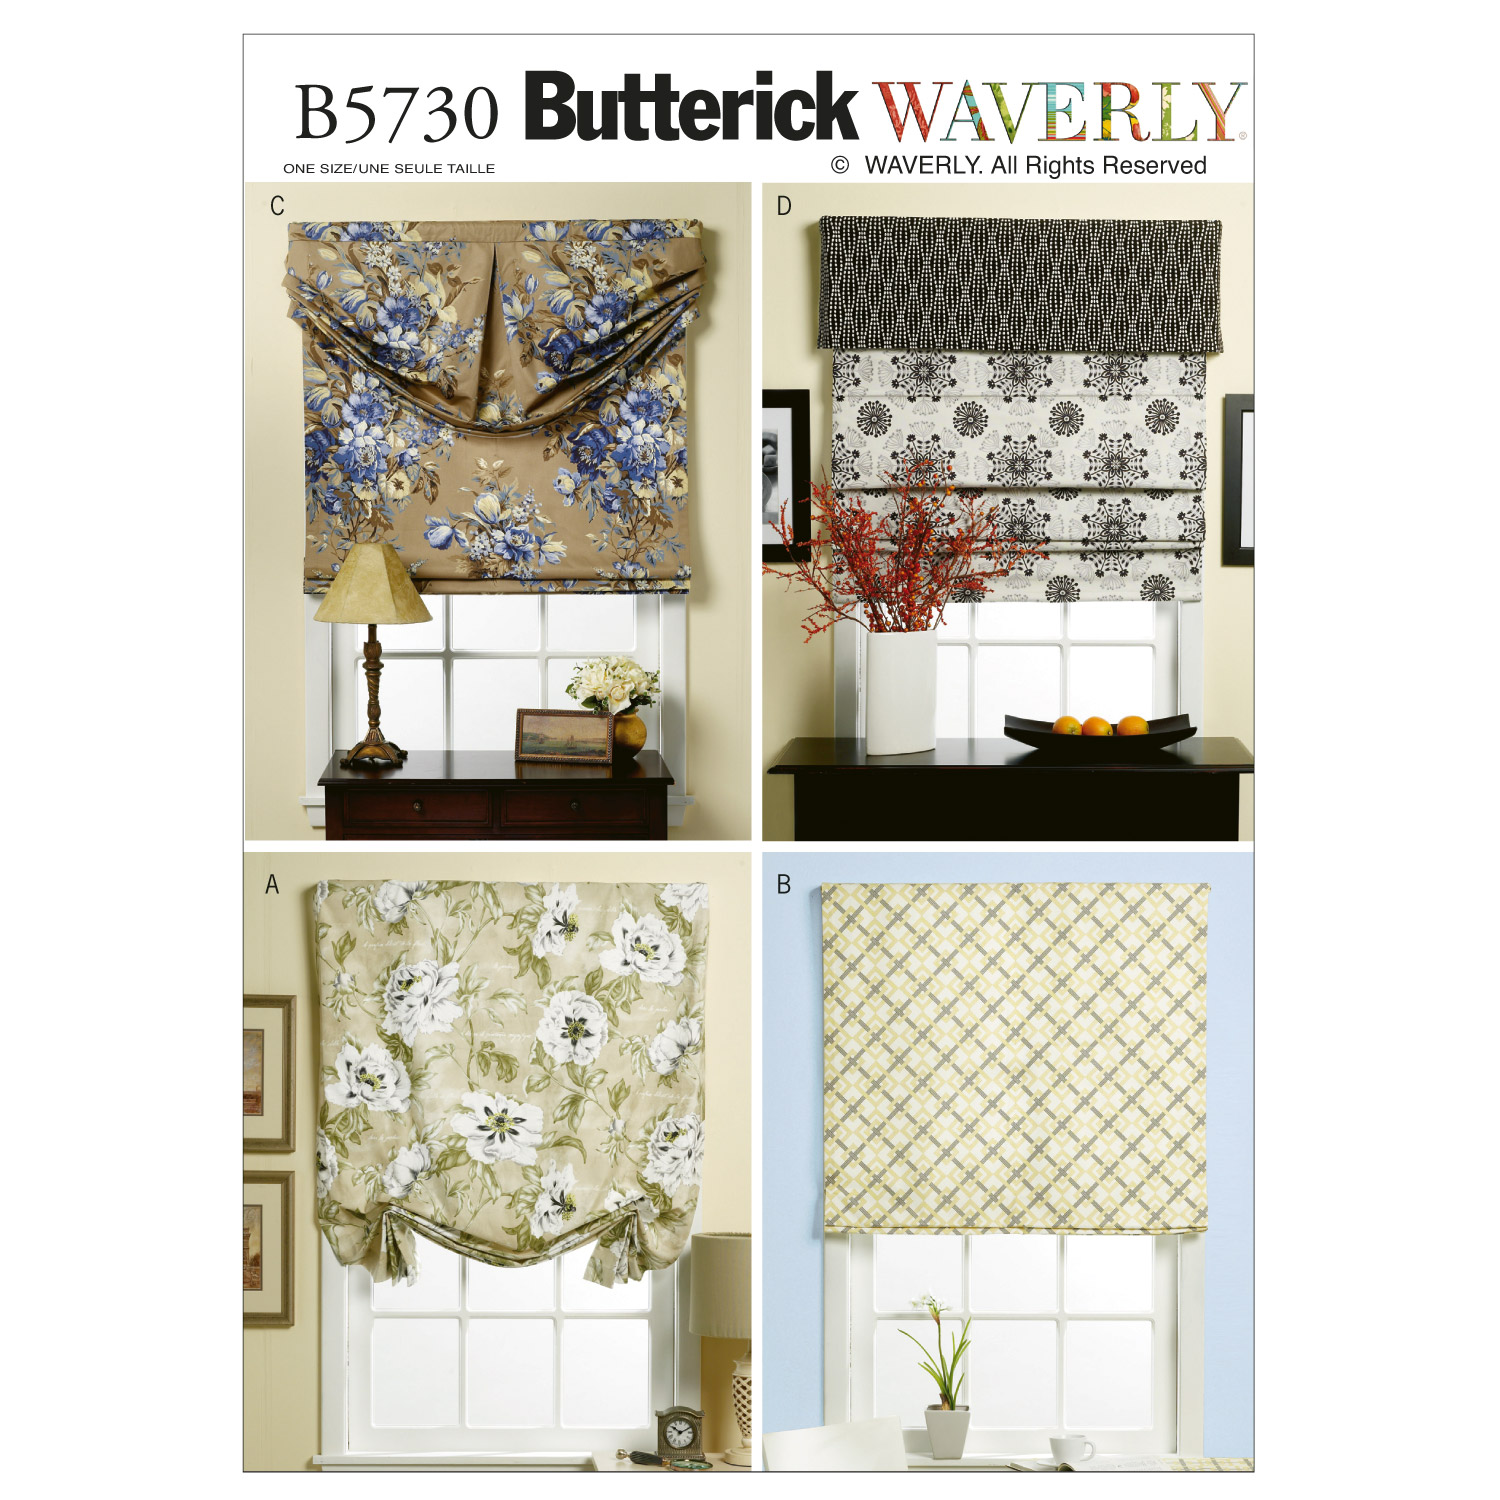 Butterick Home Design Home Designs-B5730